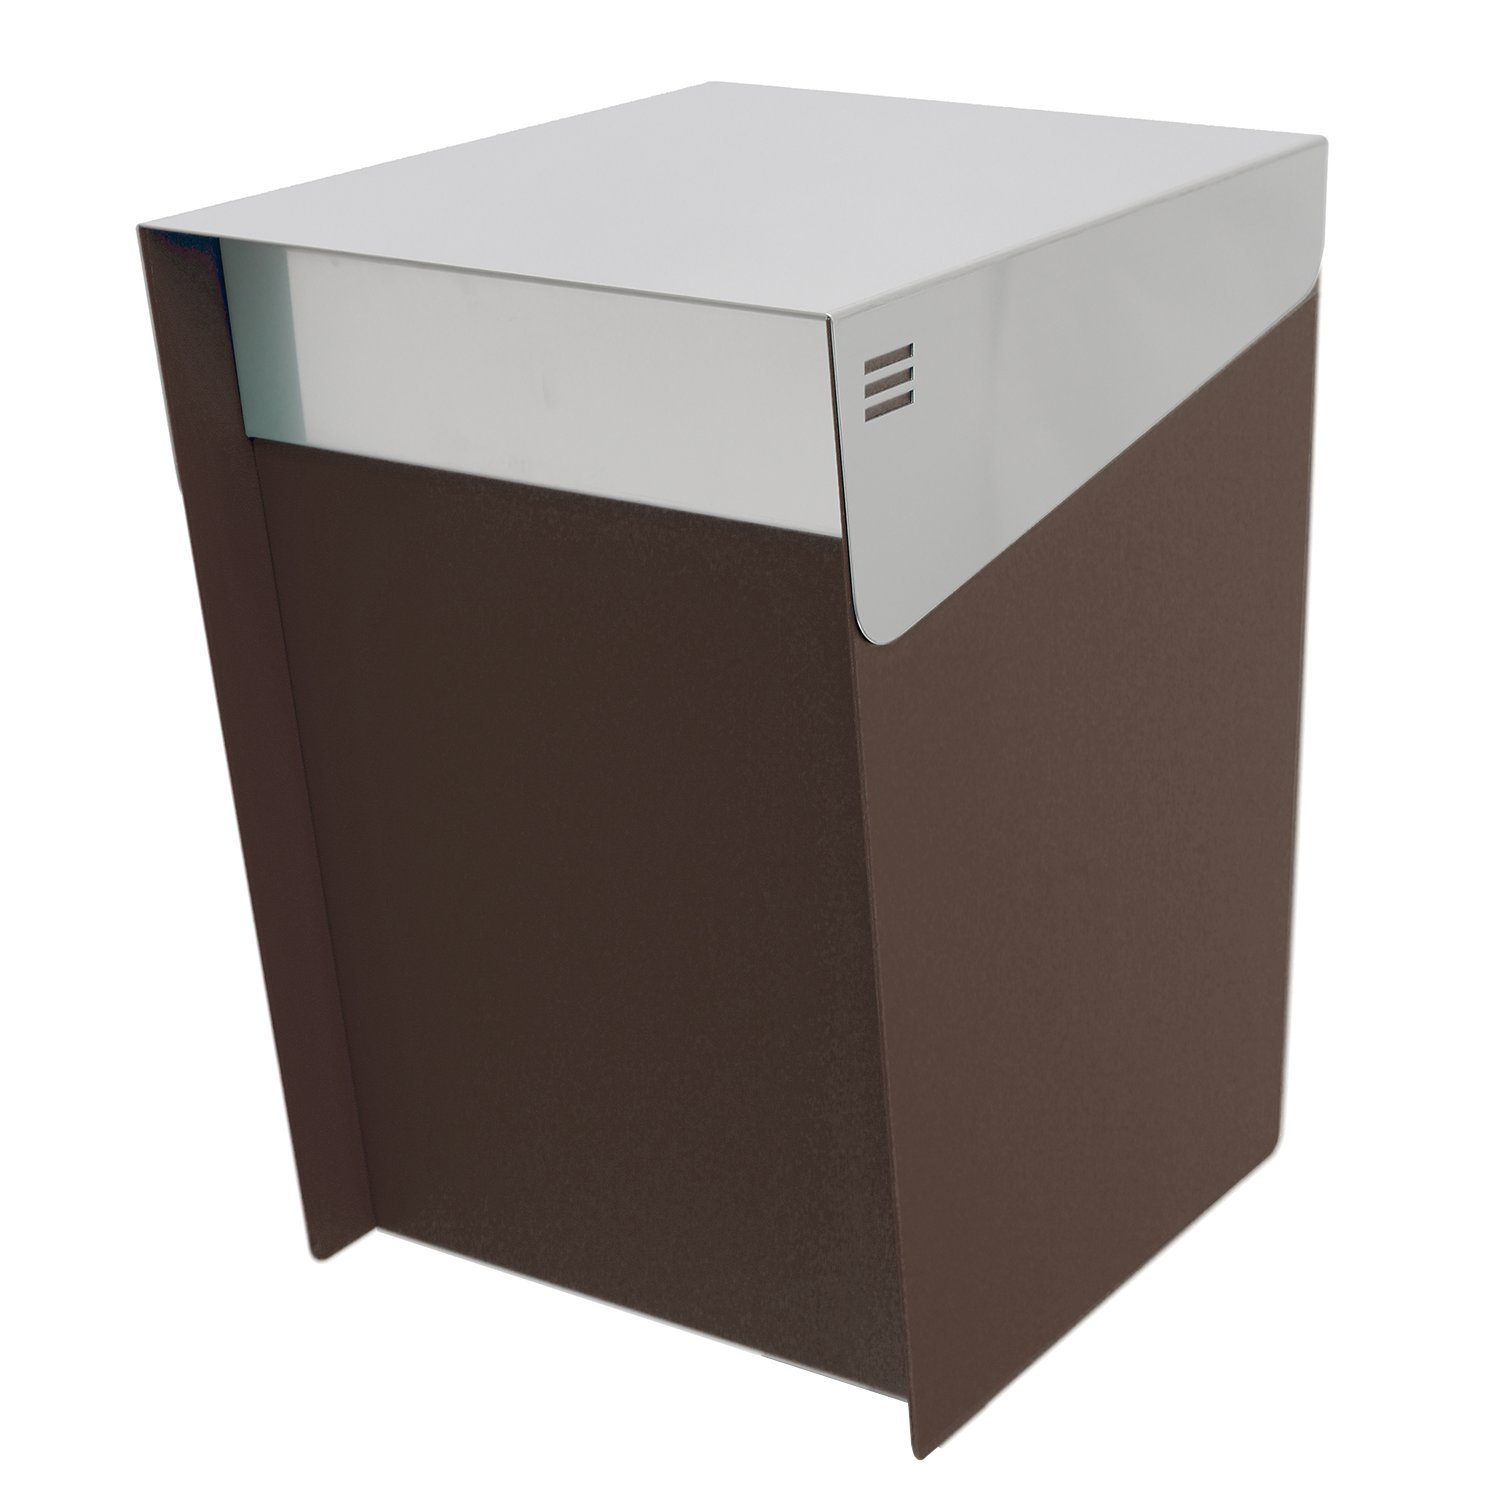 KATANABOX Mega - Stainless Steel Post Mount Modern Design Mailbox with lock and key extra large Letterbox Rust Proof for Modern Home House Apartment Rural Roadside 16'' x 11'' x 13'' (Chocolate Brown)